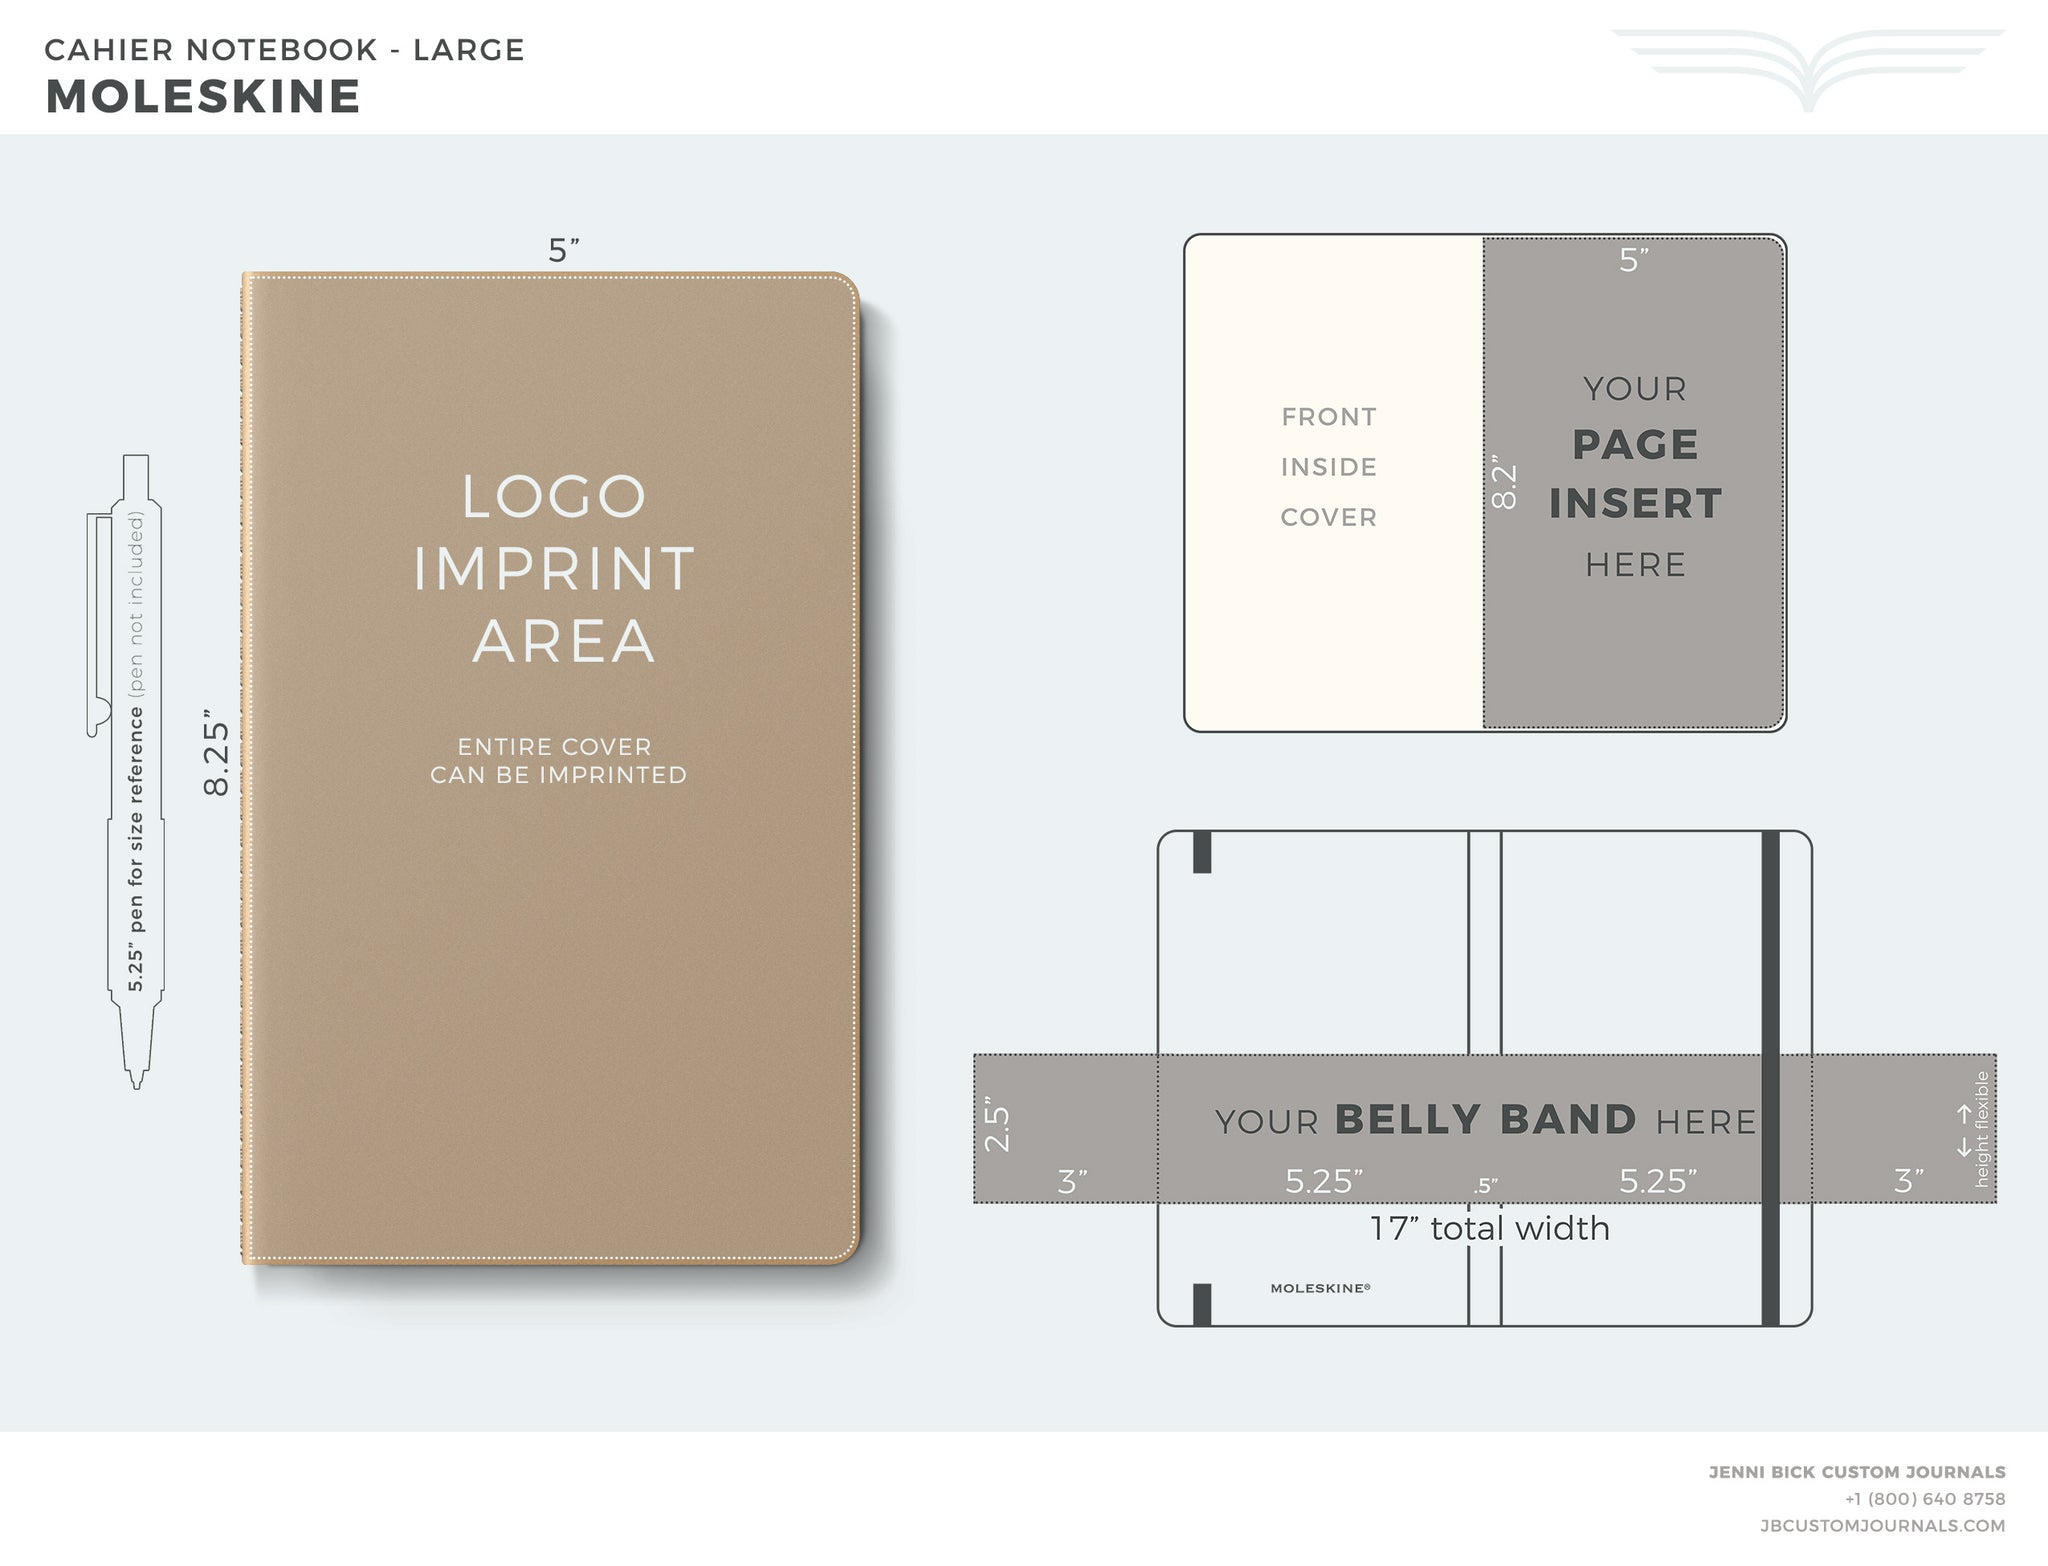 Moleskine Cahier Large Template